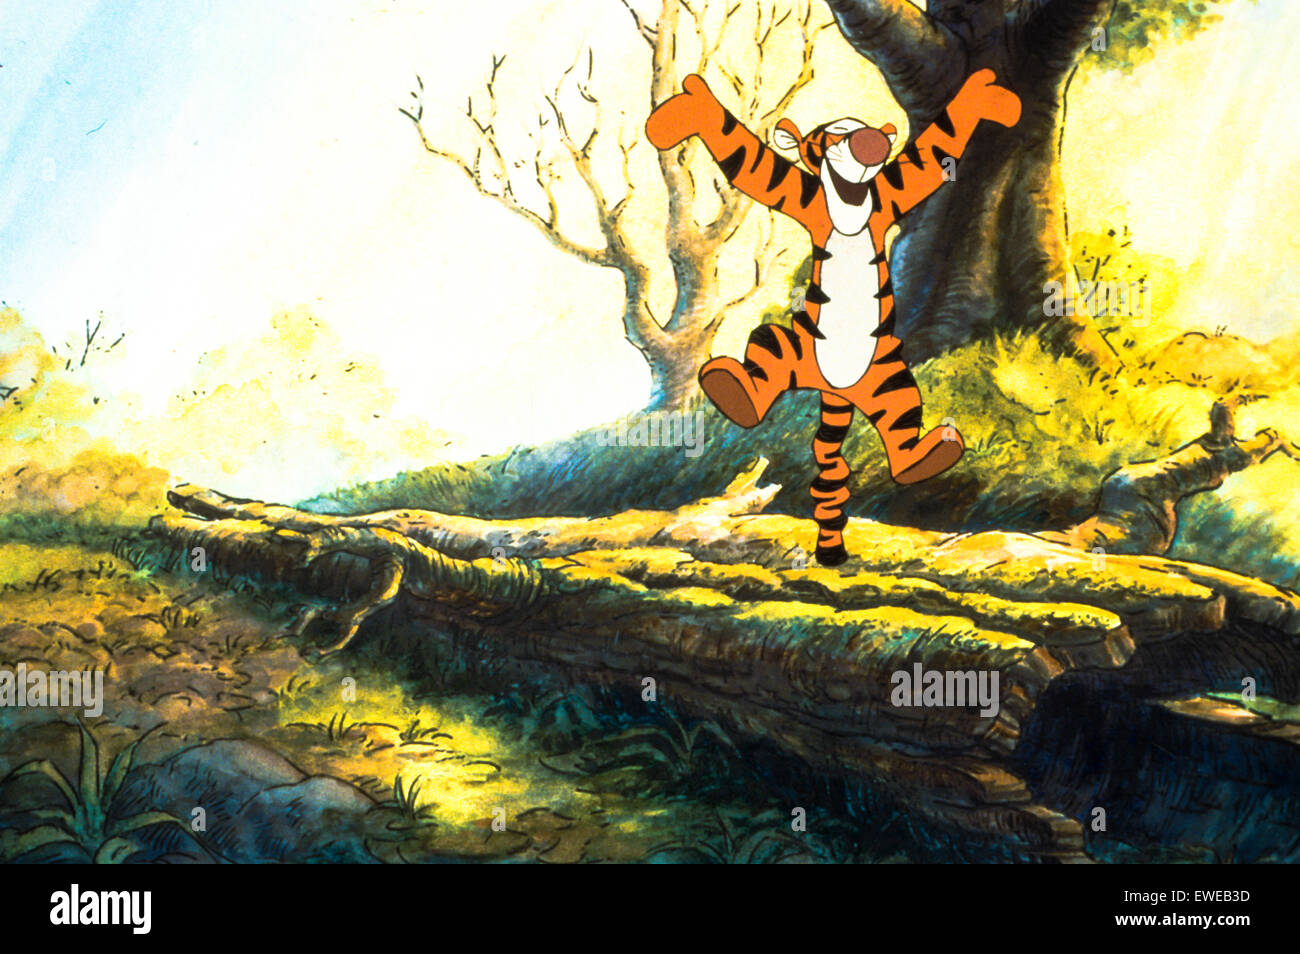 tigger movie - Stock Image